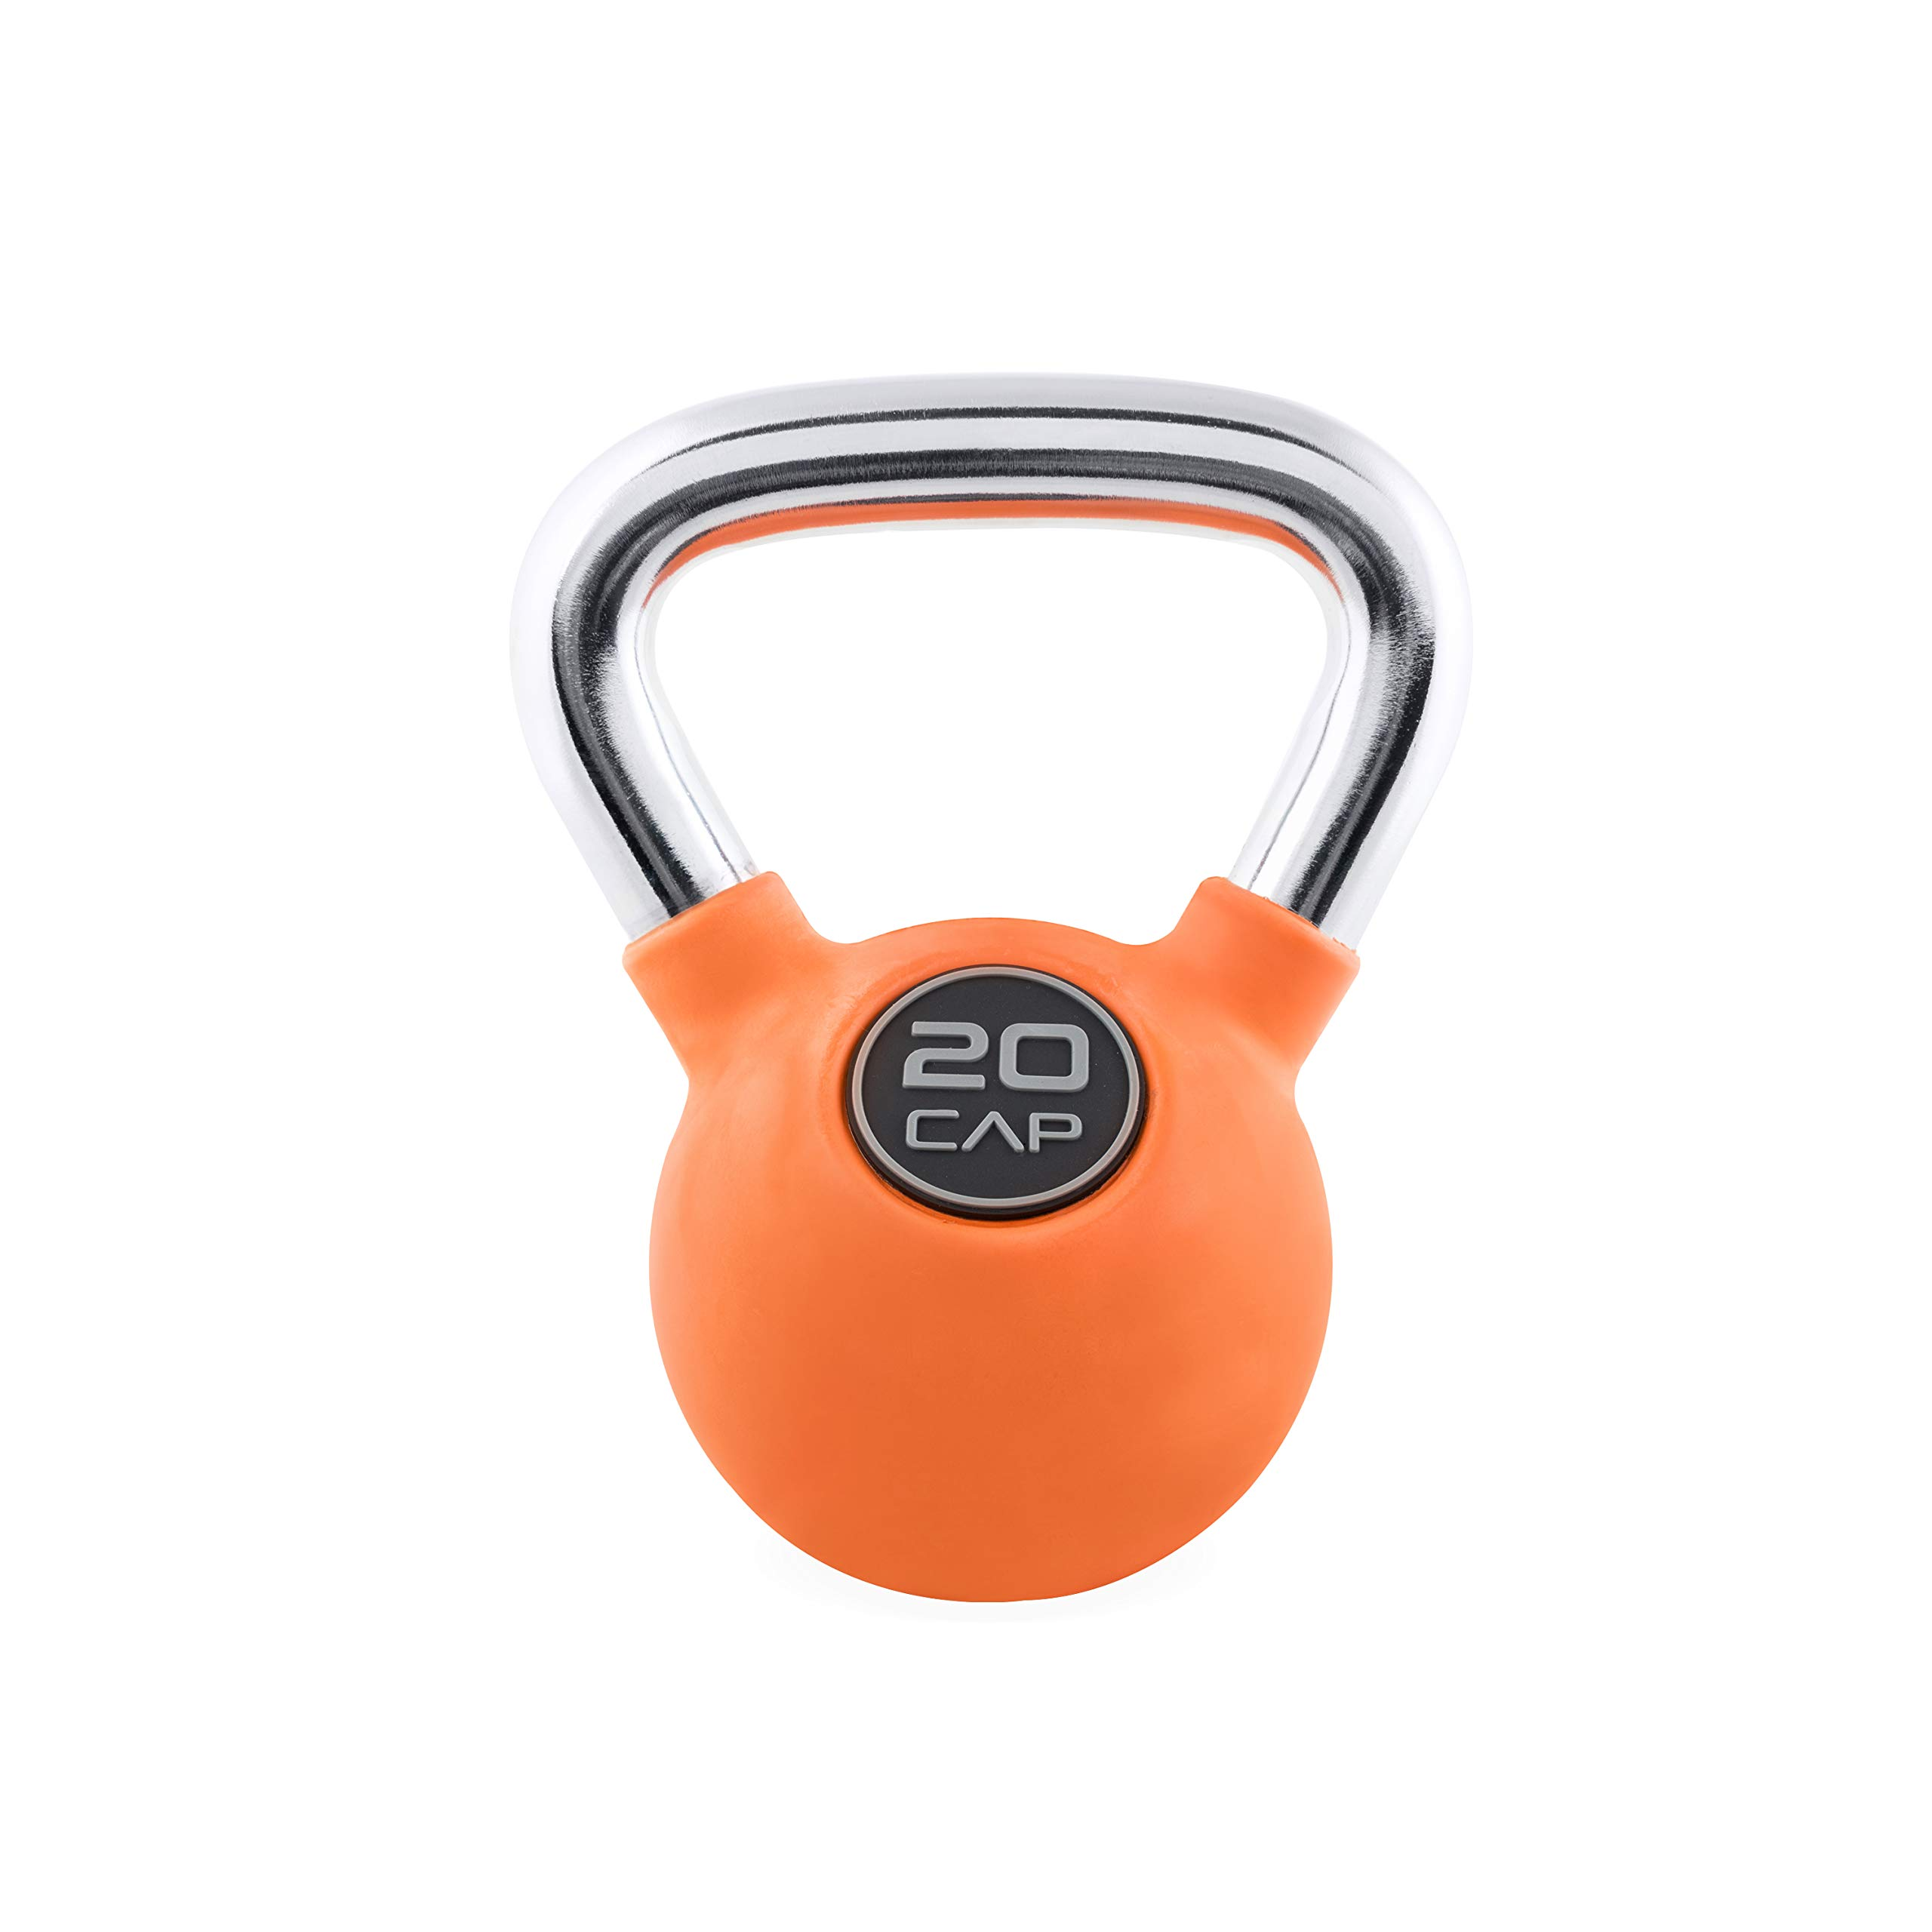 CAP Barbell Colored Rubber Coated Kettlebell with Chrome Handle, 20 lb